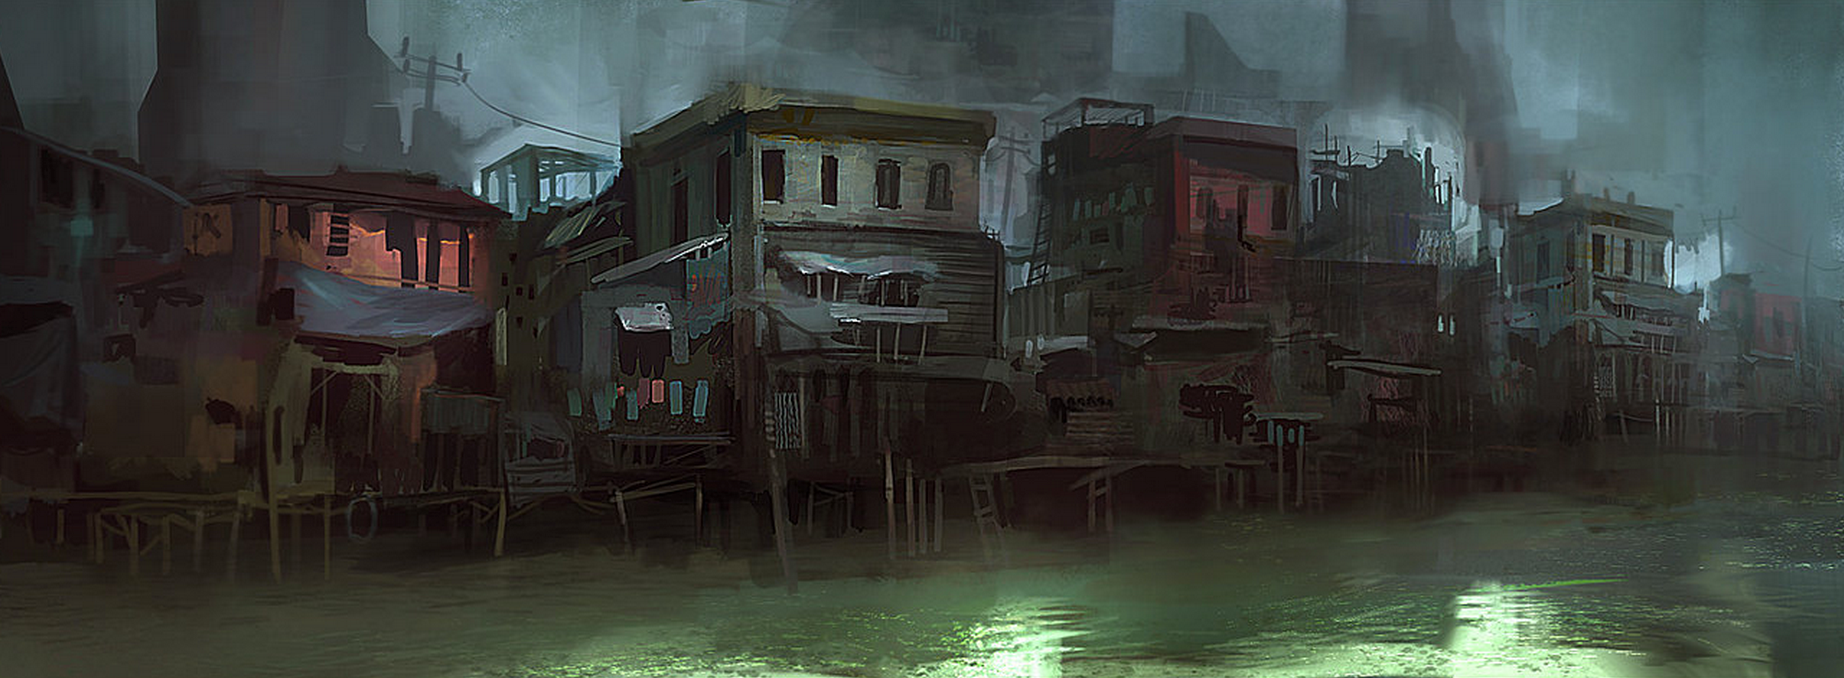 Water_Village_by_eWKn_on_deviantART.png